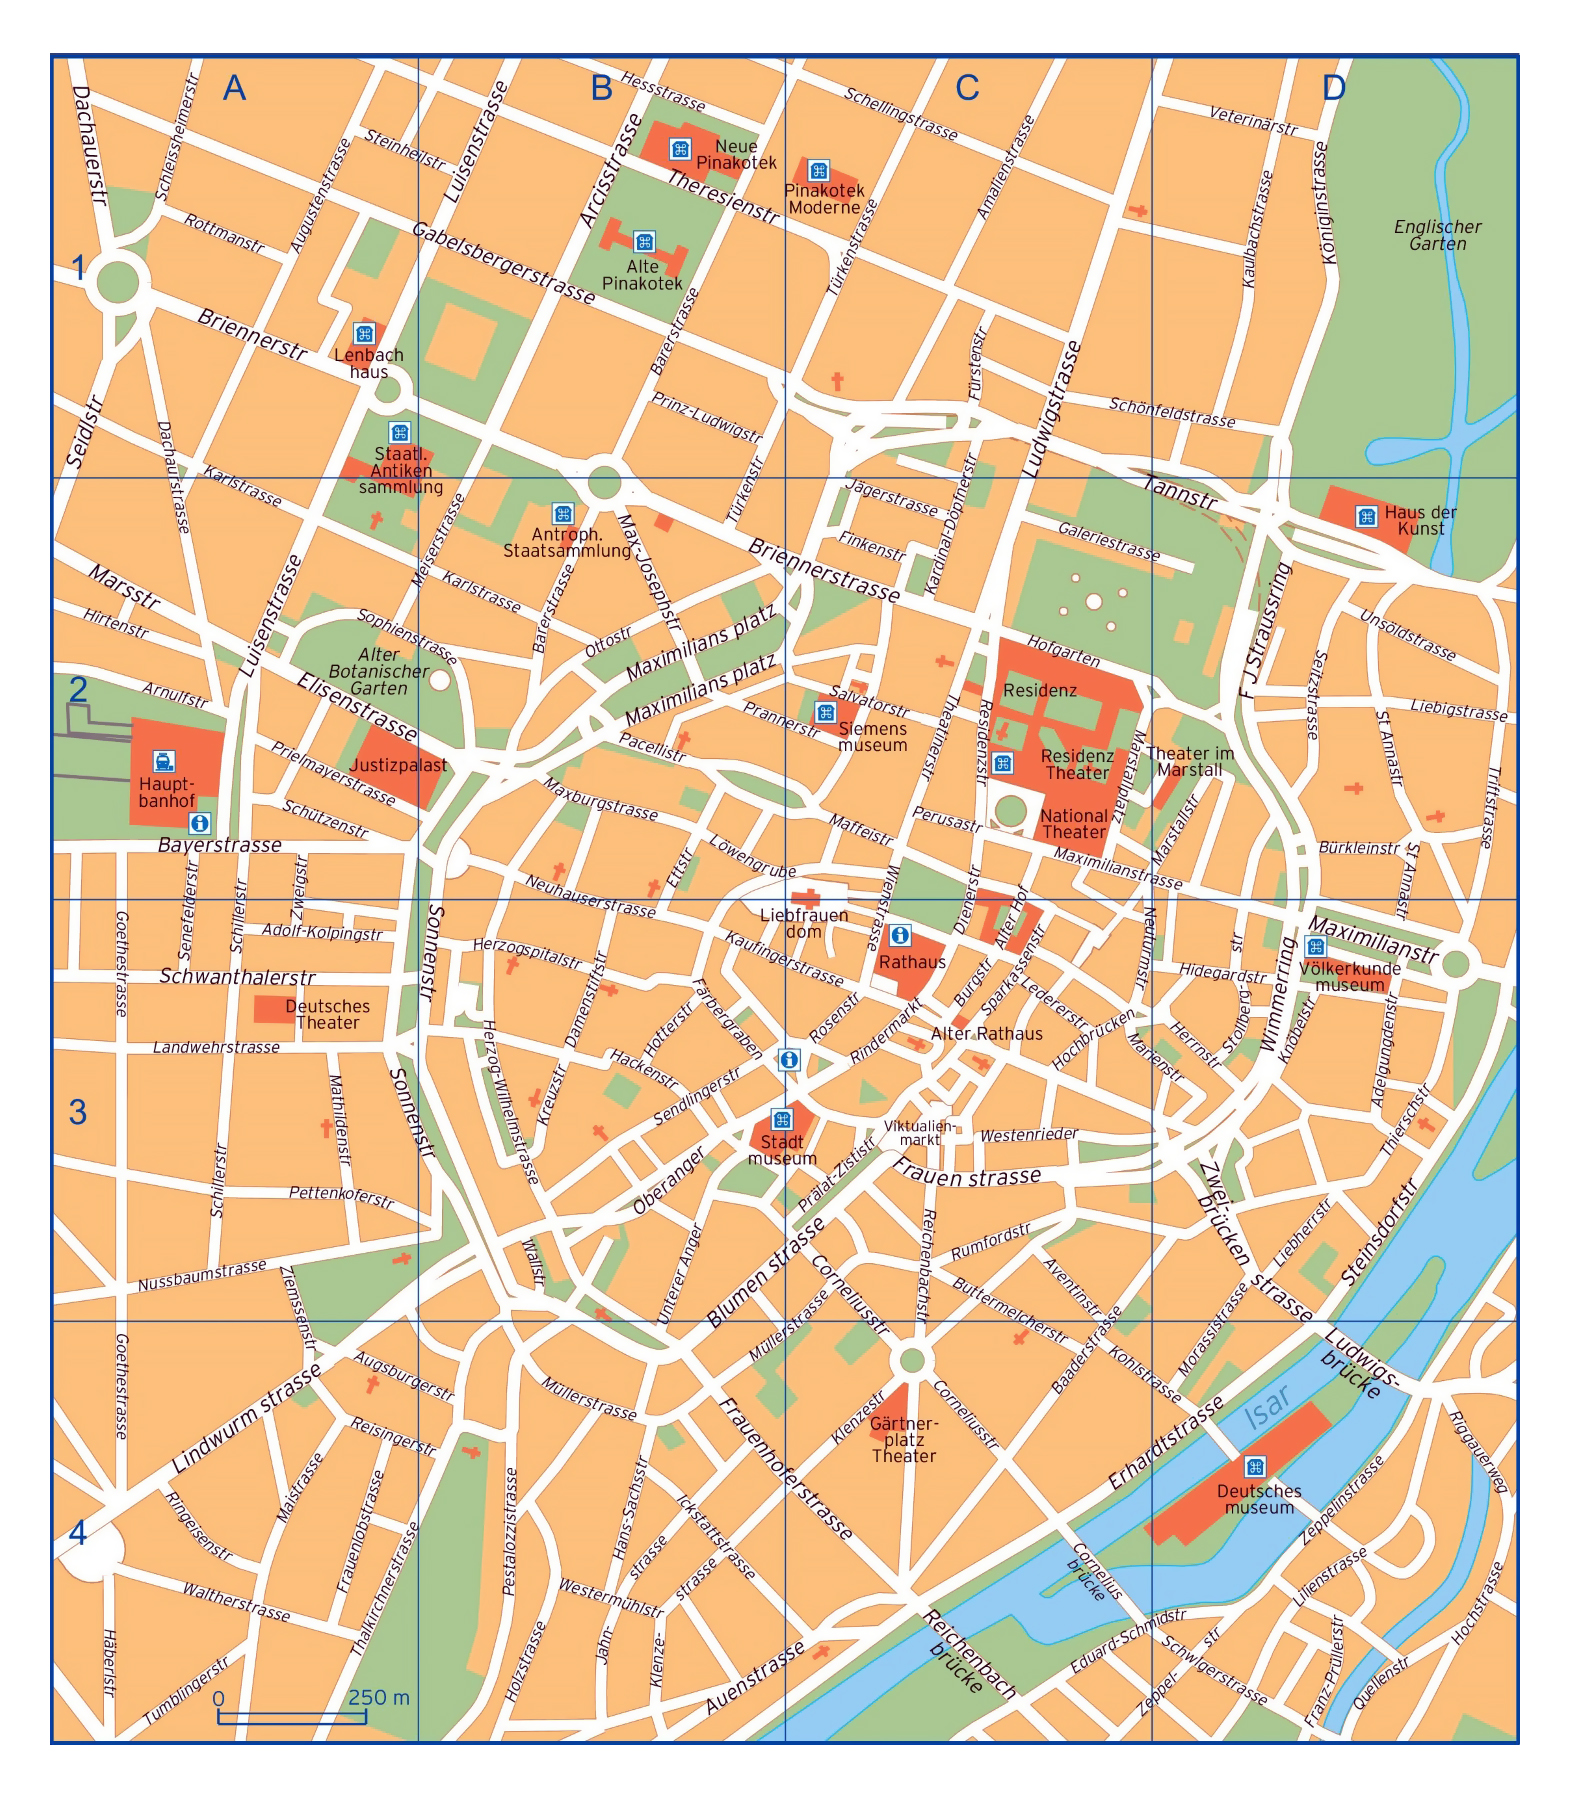 Large Detailed Map Of Central Part Of Munich City With Street Names